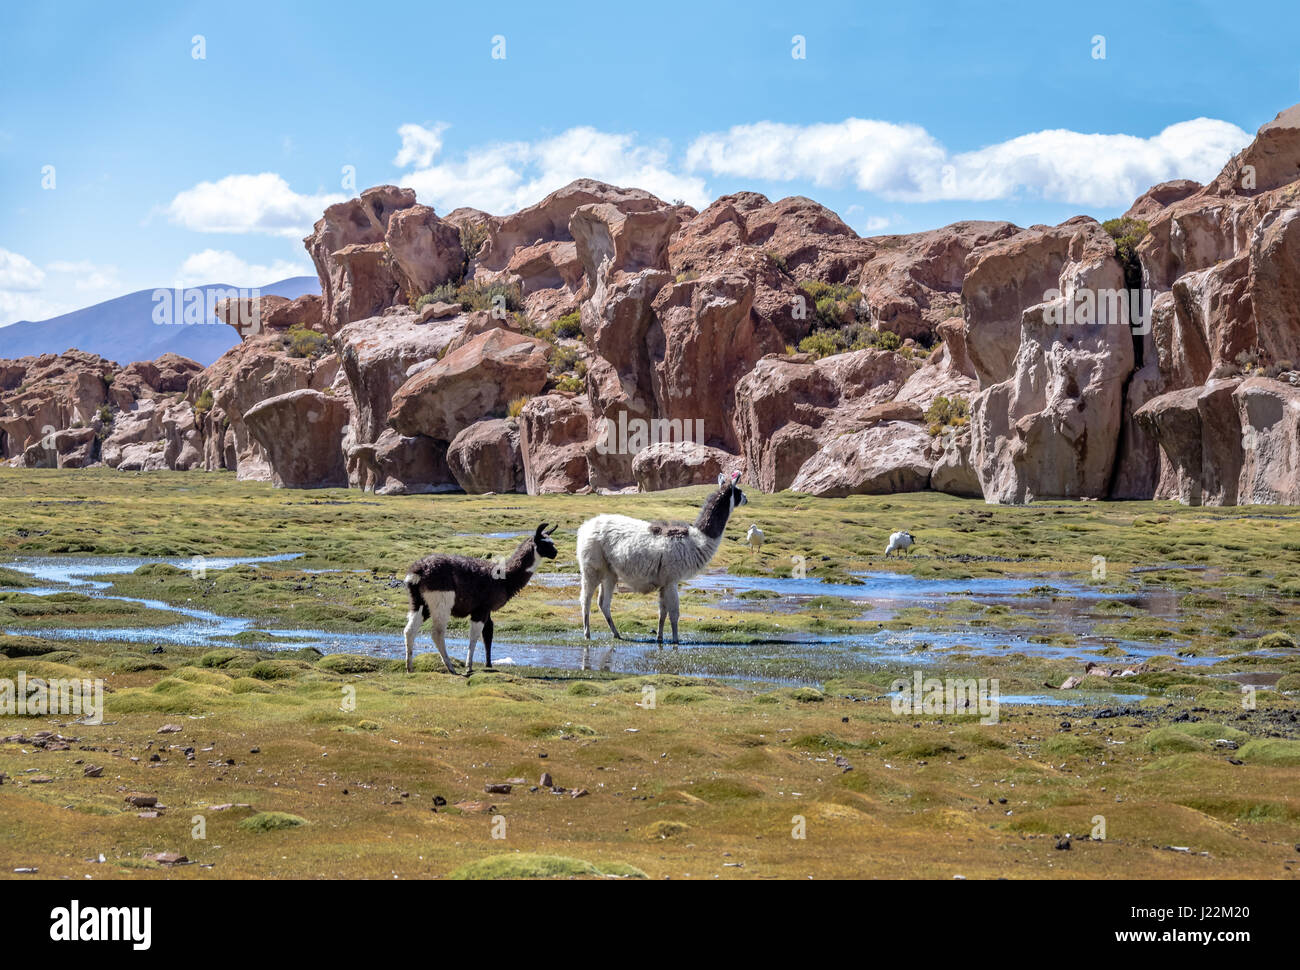 Llamas in Bolivean altiplano with rock formations on background - Potosi Department, Bolivia - Stock Image